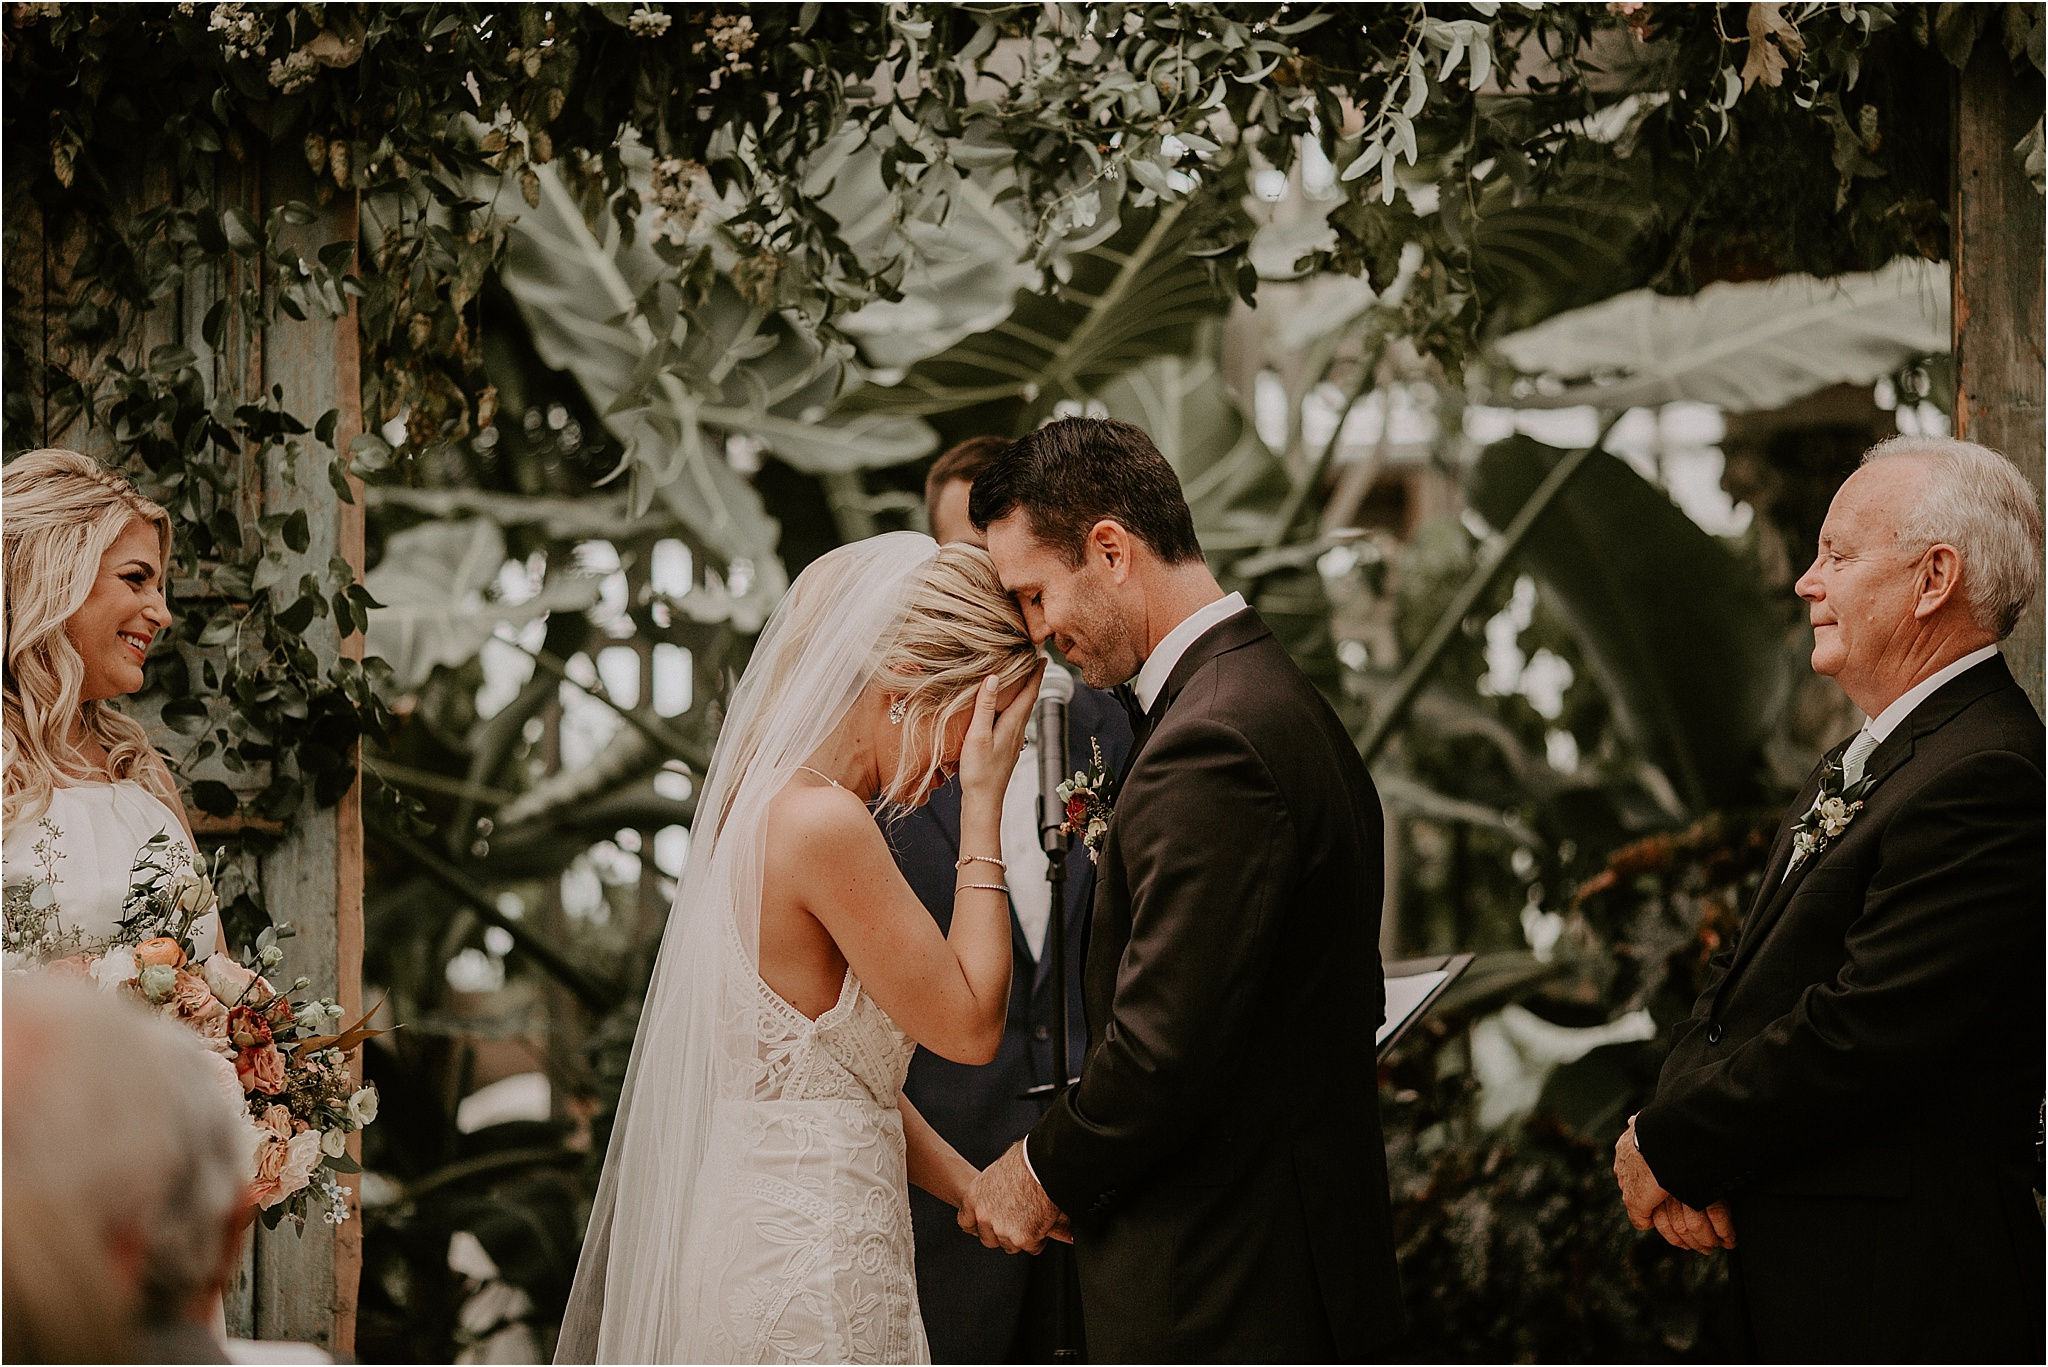 Sarah_Brookhart_Hortulus_Farm_Garden_and_Nursey_Wedding_Photographer_0048.jpg